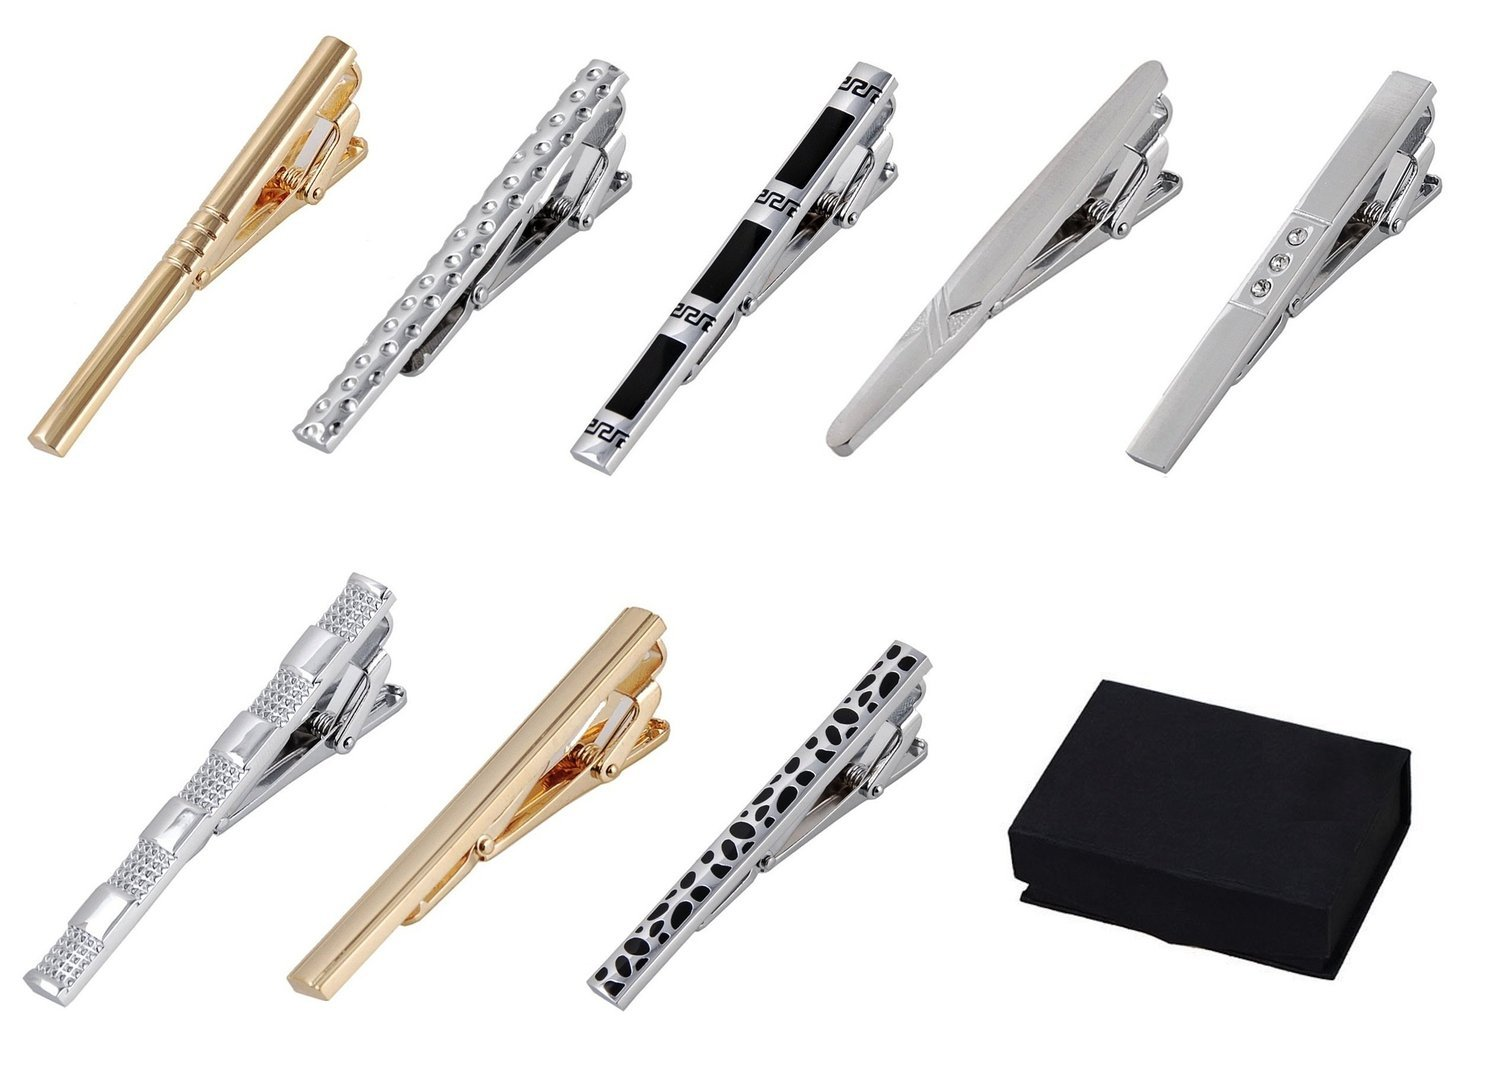 8 pc Tie Bar - Tie Clip Set, Silver Tone & Gold Tone, Black Gift Box